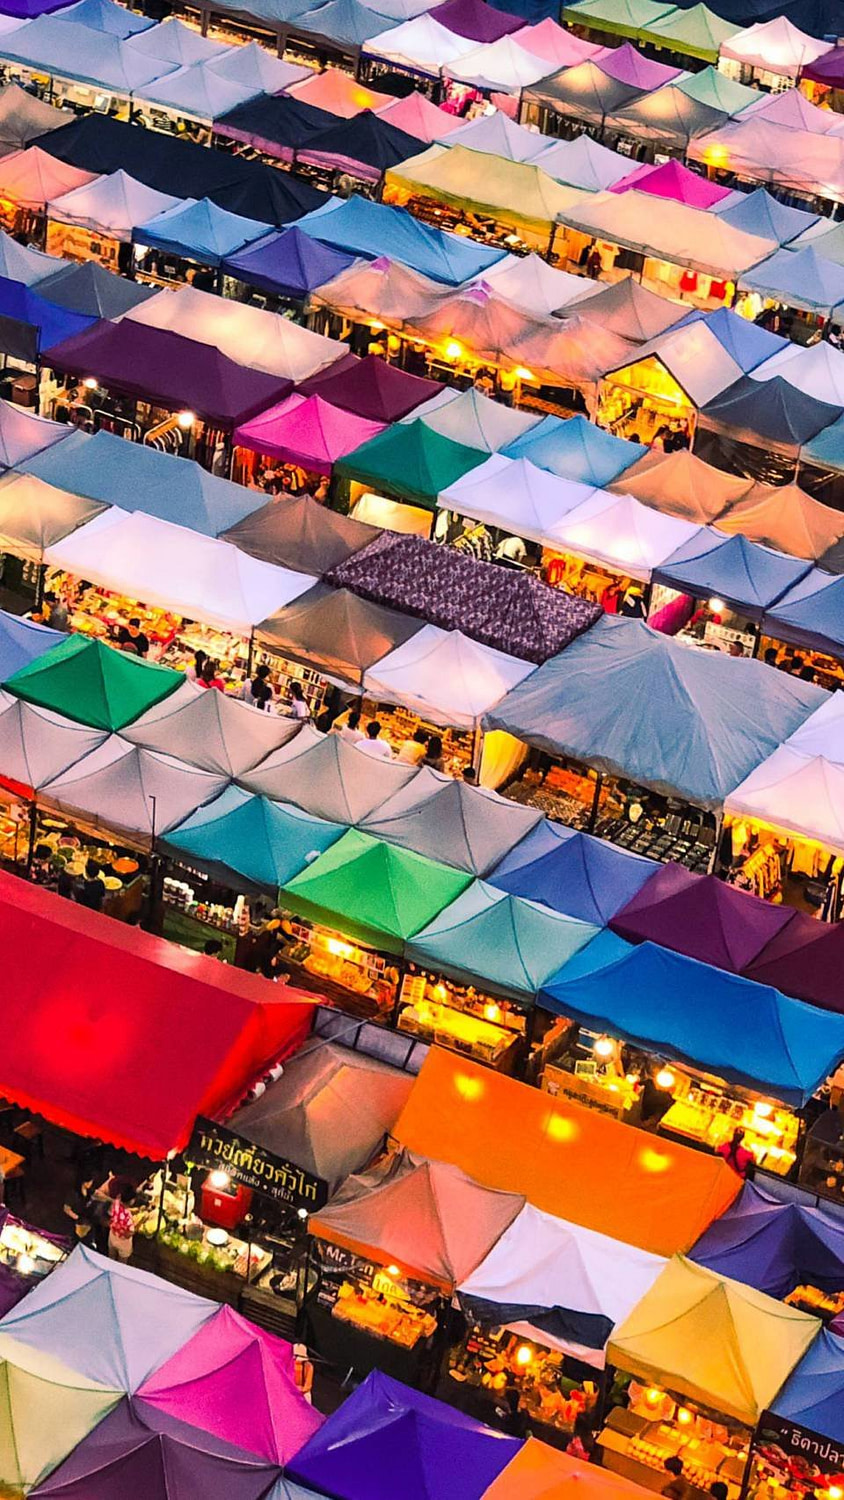 A shot overlooking all the shops at the Chatuchak Market in Bangkok